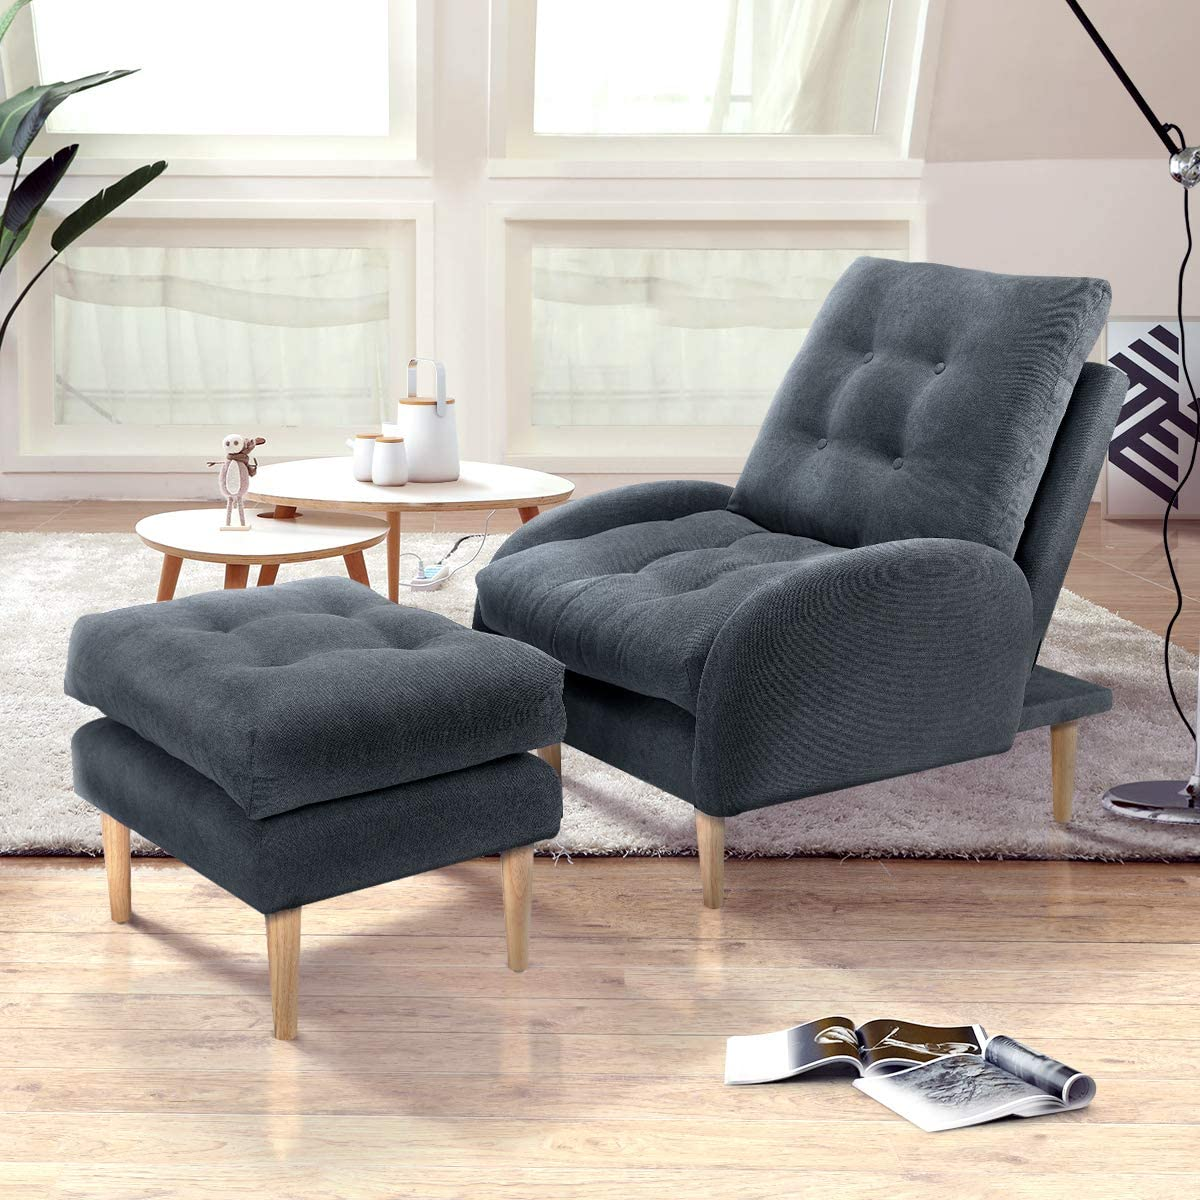 Esright Sofa Chair with Ottoman,Fabric Lounge Chair Recliner with Adjustable Backrest, Grey